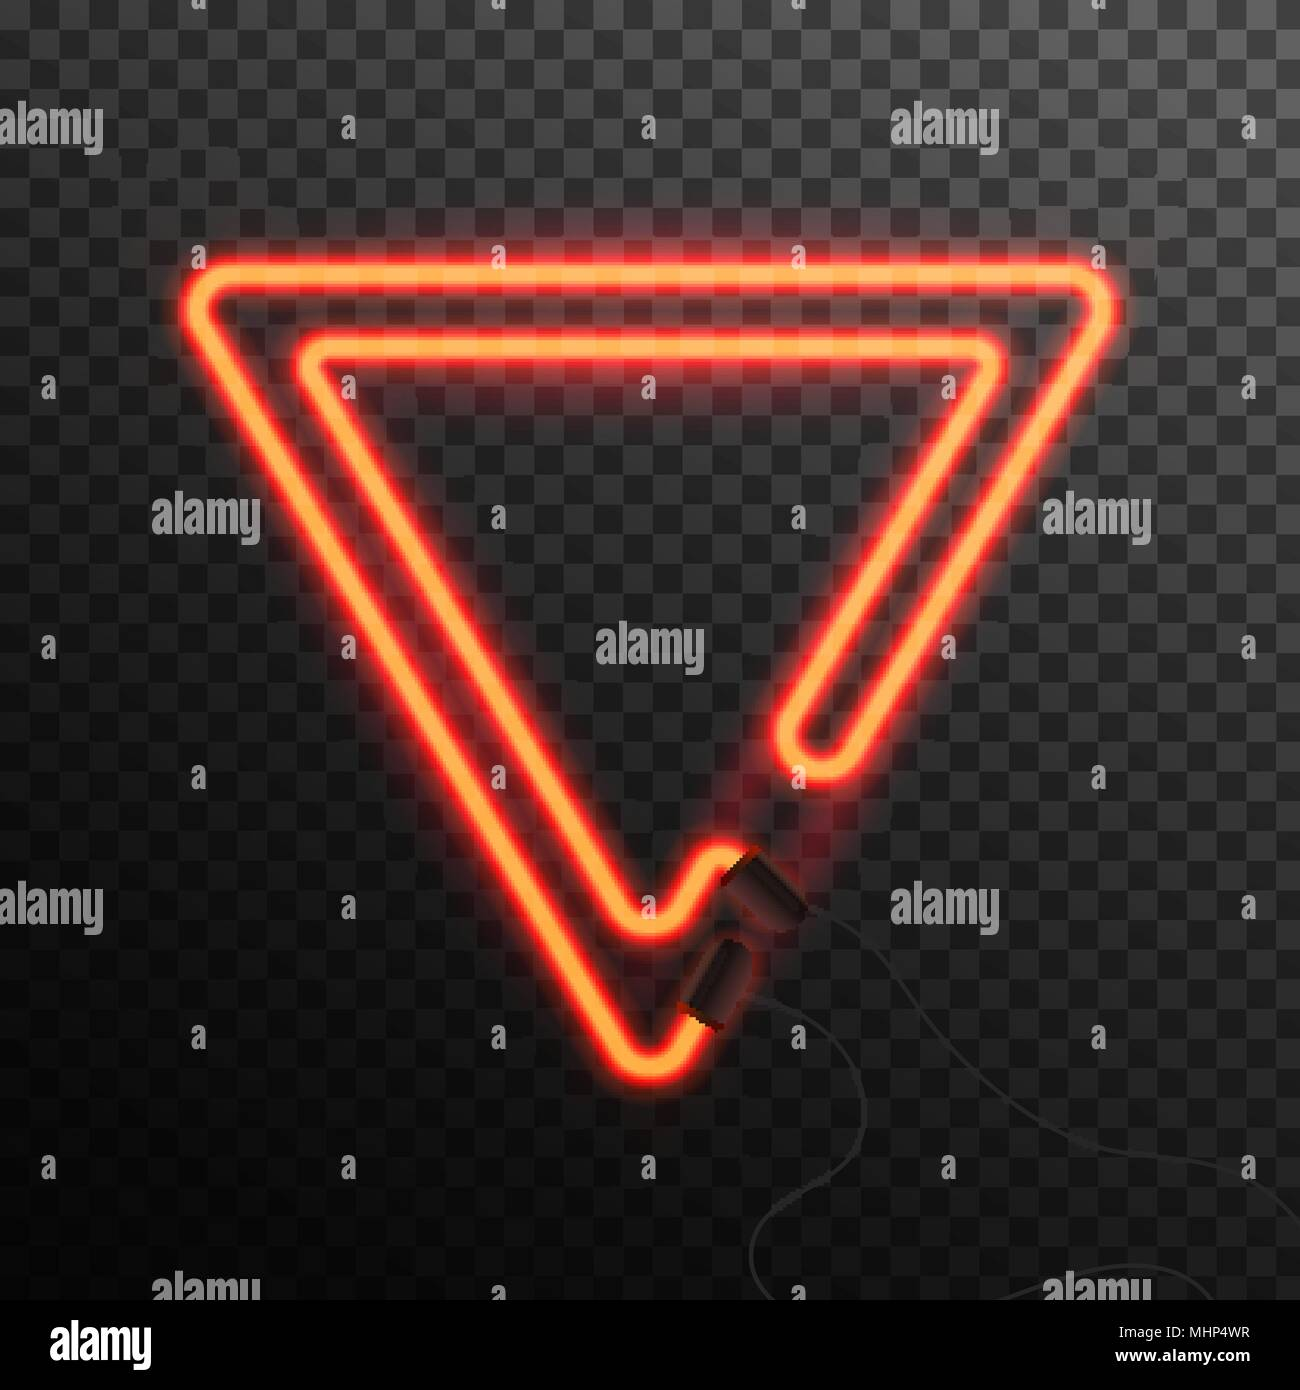 Glowing Neon effect abstract triangle  Night club or bar concept on